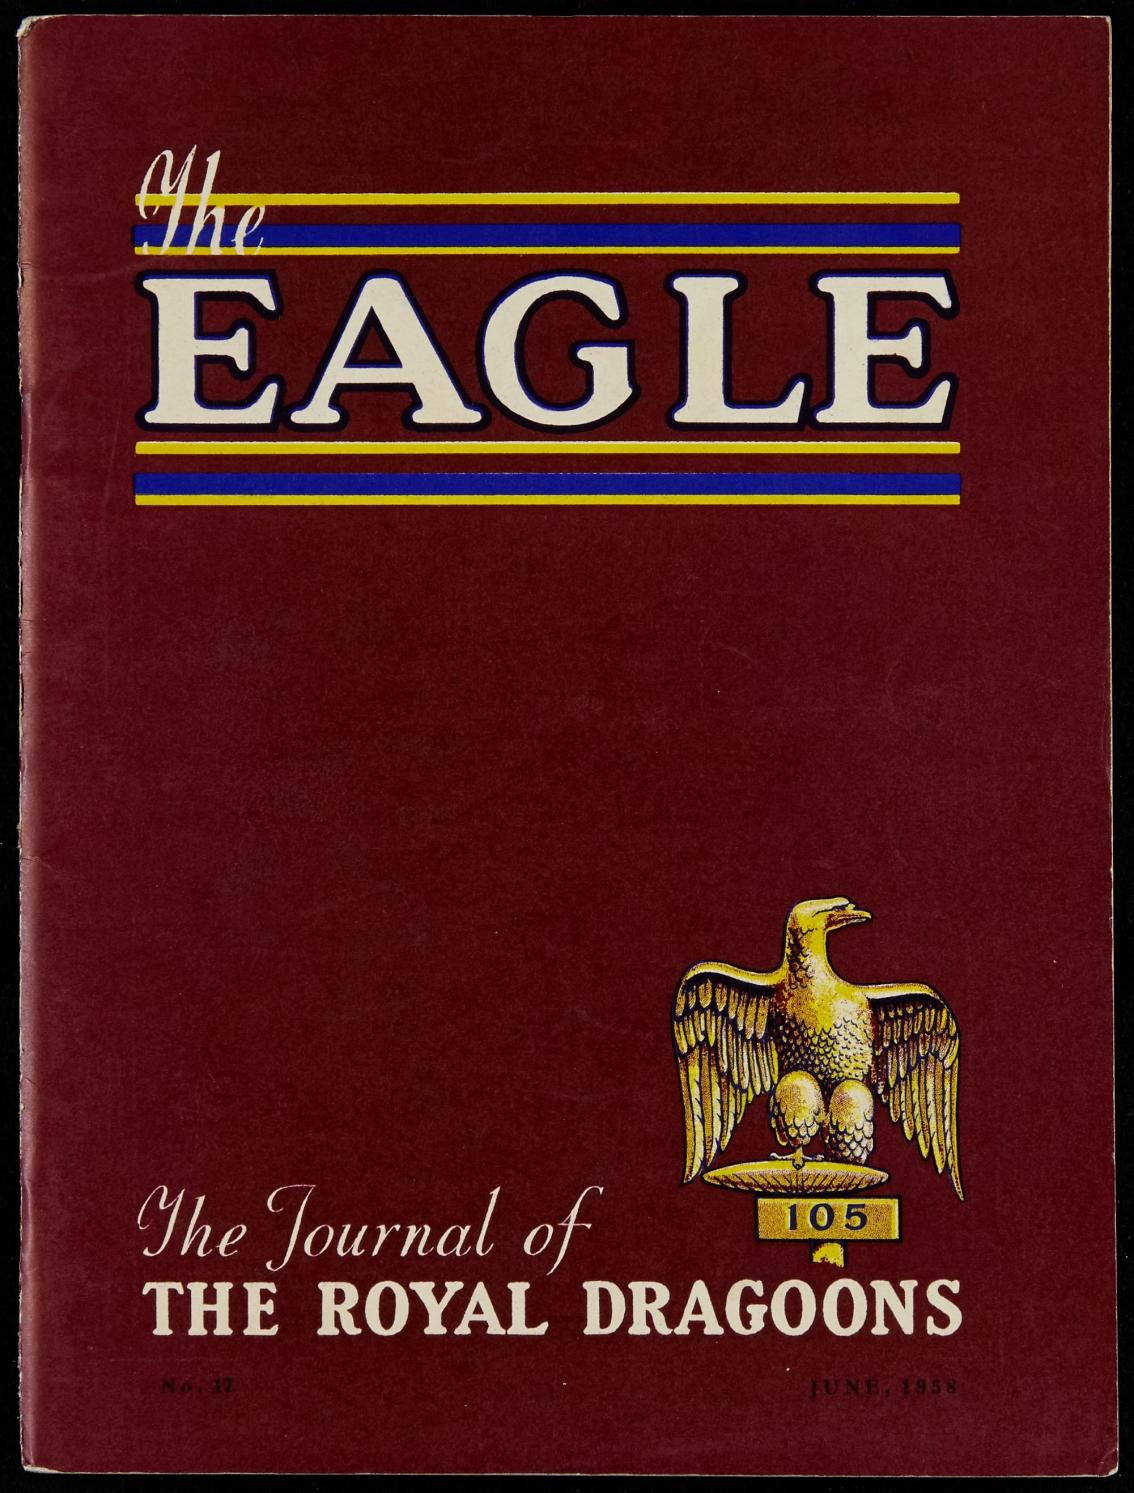 The eagle royal dragoons magazines the eagle 1958 by RHG/D